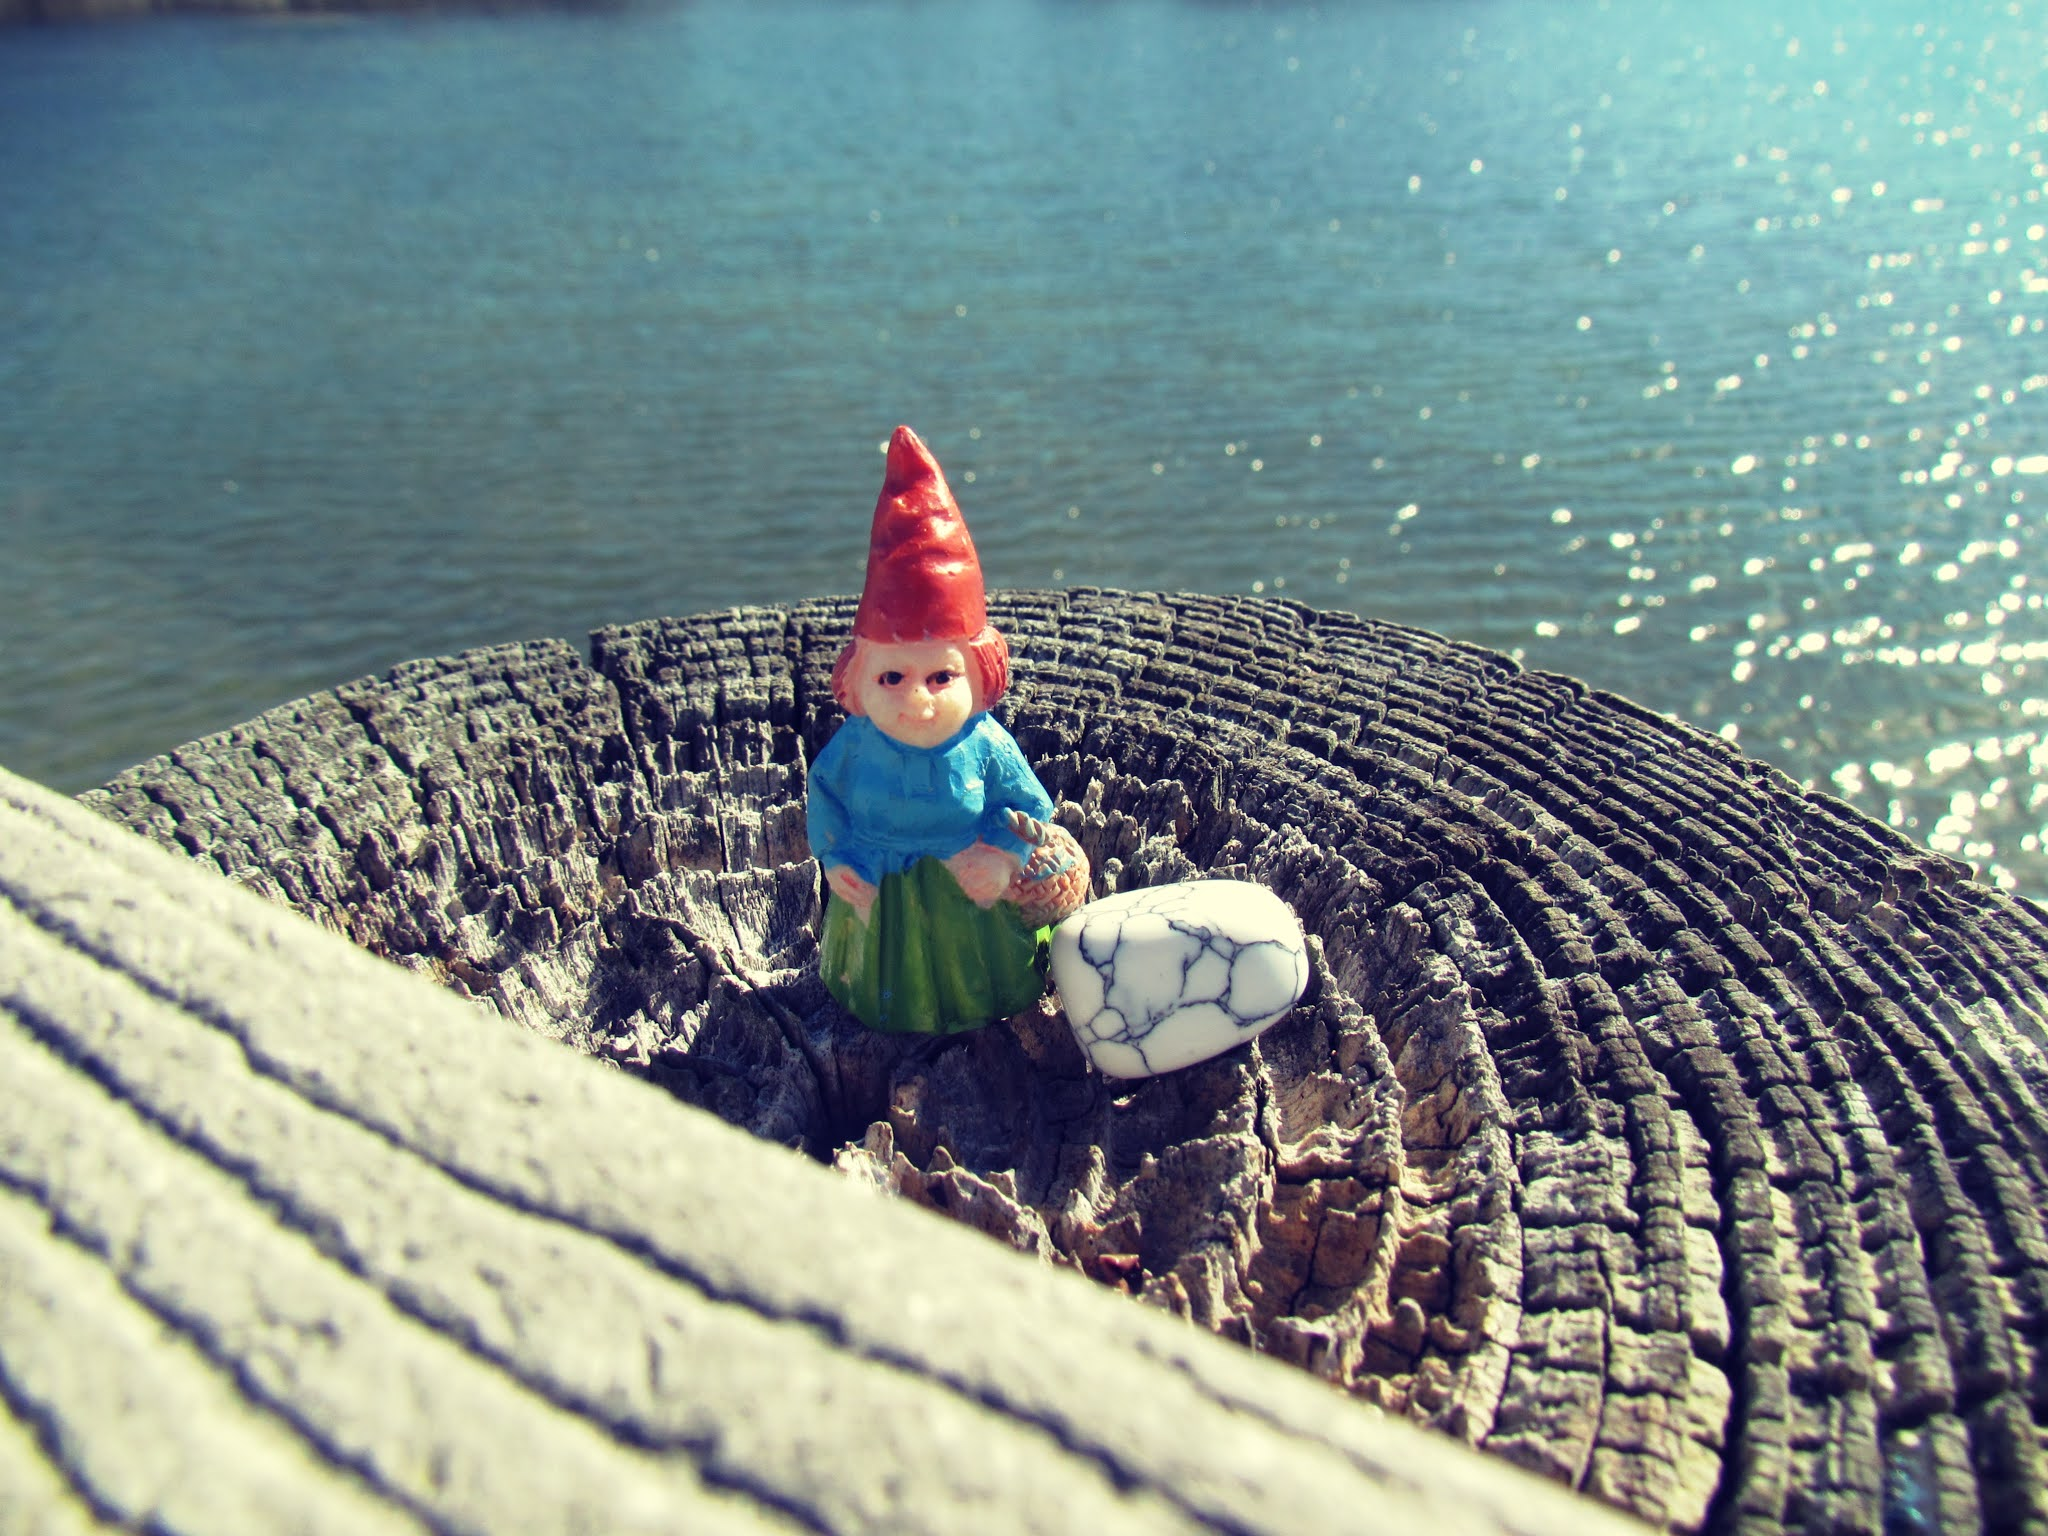 A sea witch girl gnome high priestess overlooking the sea like Morgan Le Fay of the Arthurian legend of Medieval times